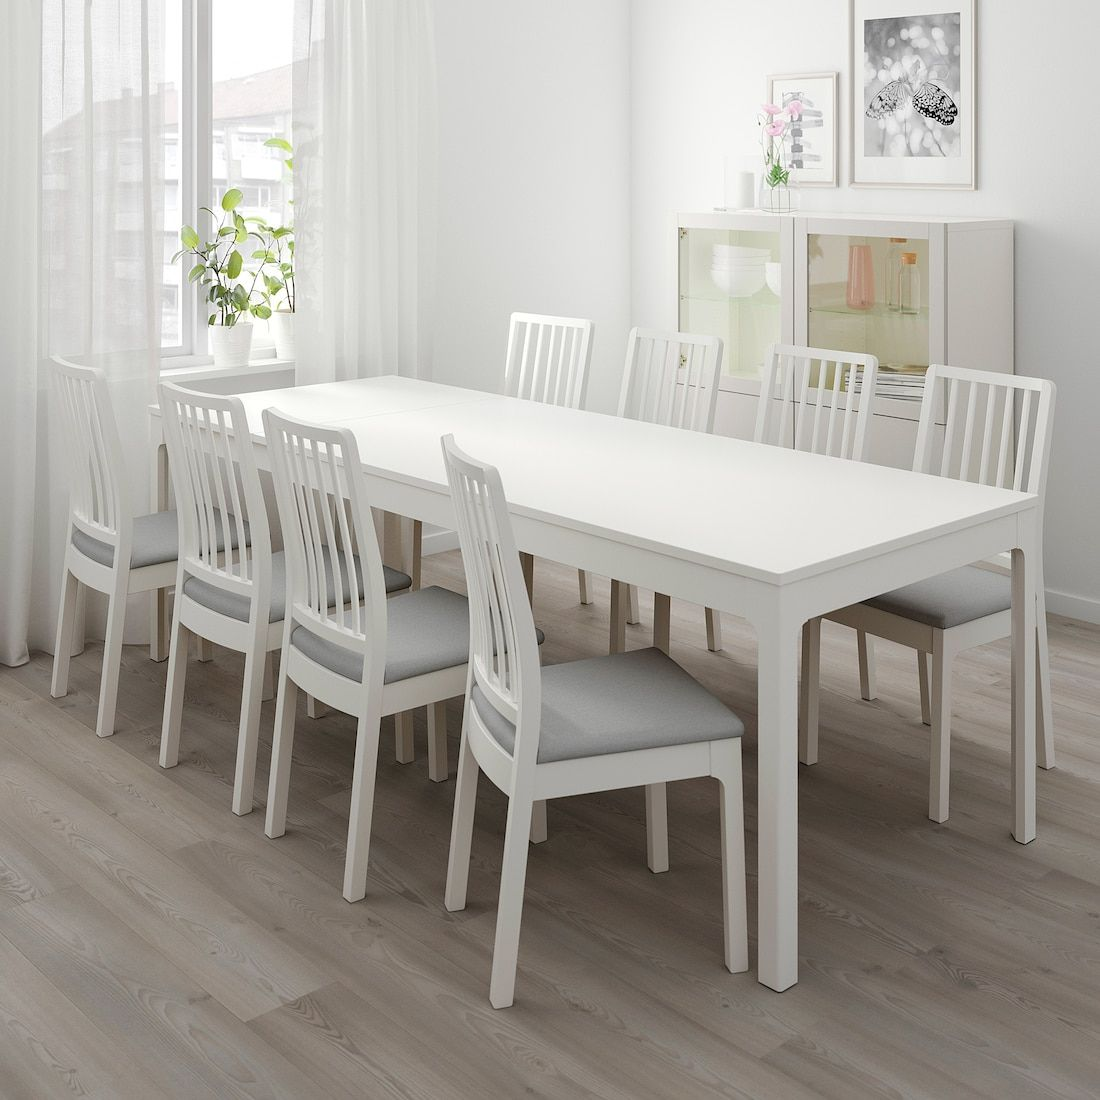 Ekedalen Extendable Table White Ikea Canada Ikea In 2020 Ikea Extendable Table White Kitchen Table Budget Friendly Living Room